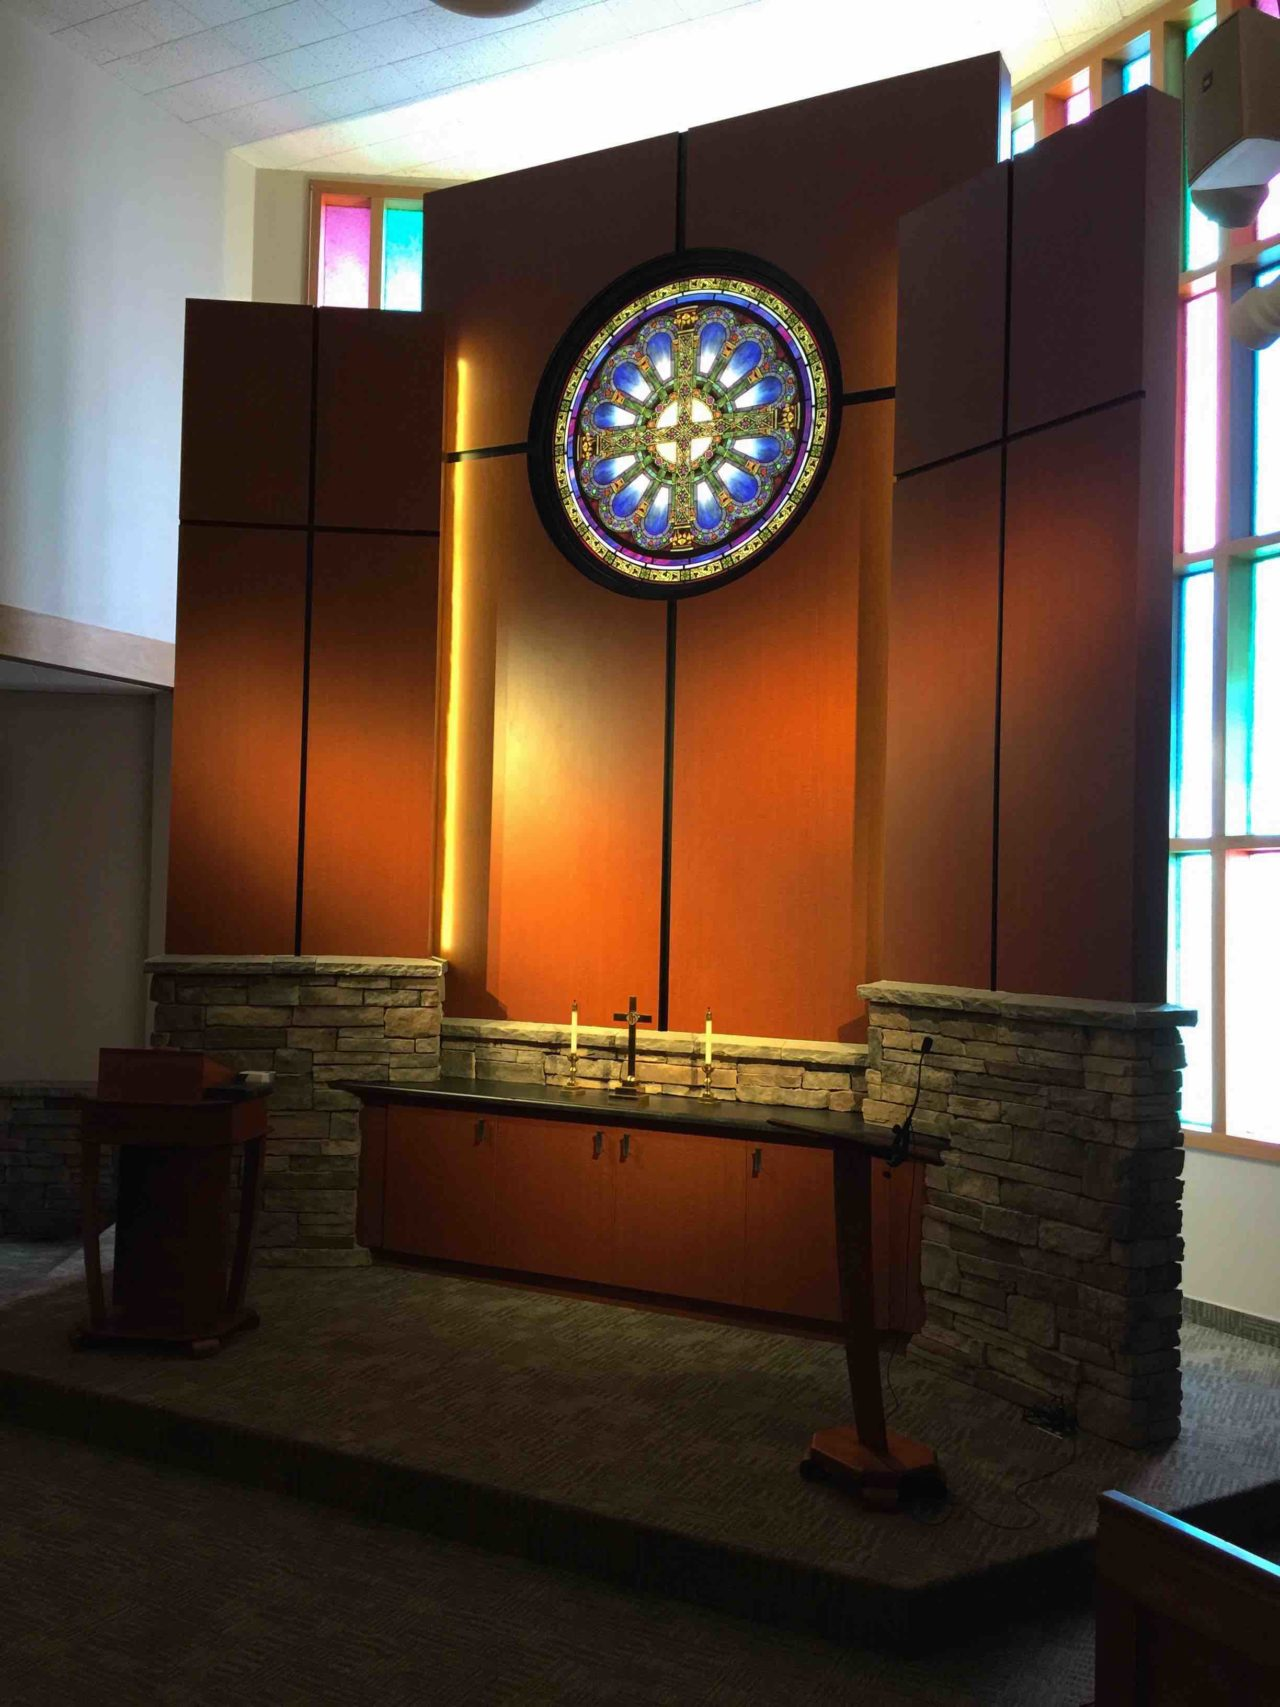 Stained Glass, Laminate, Presbyterian church, renovation, existing facility, Wyoming, Cheyenne